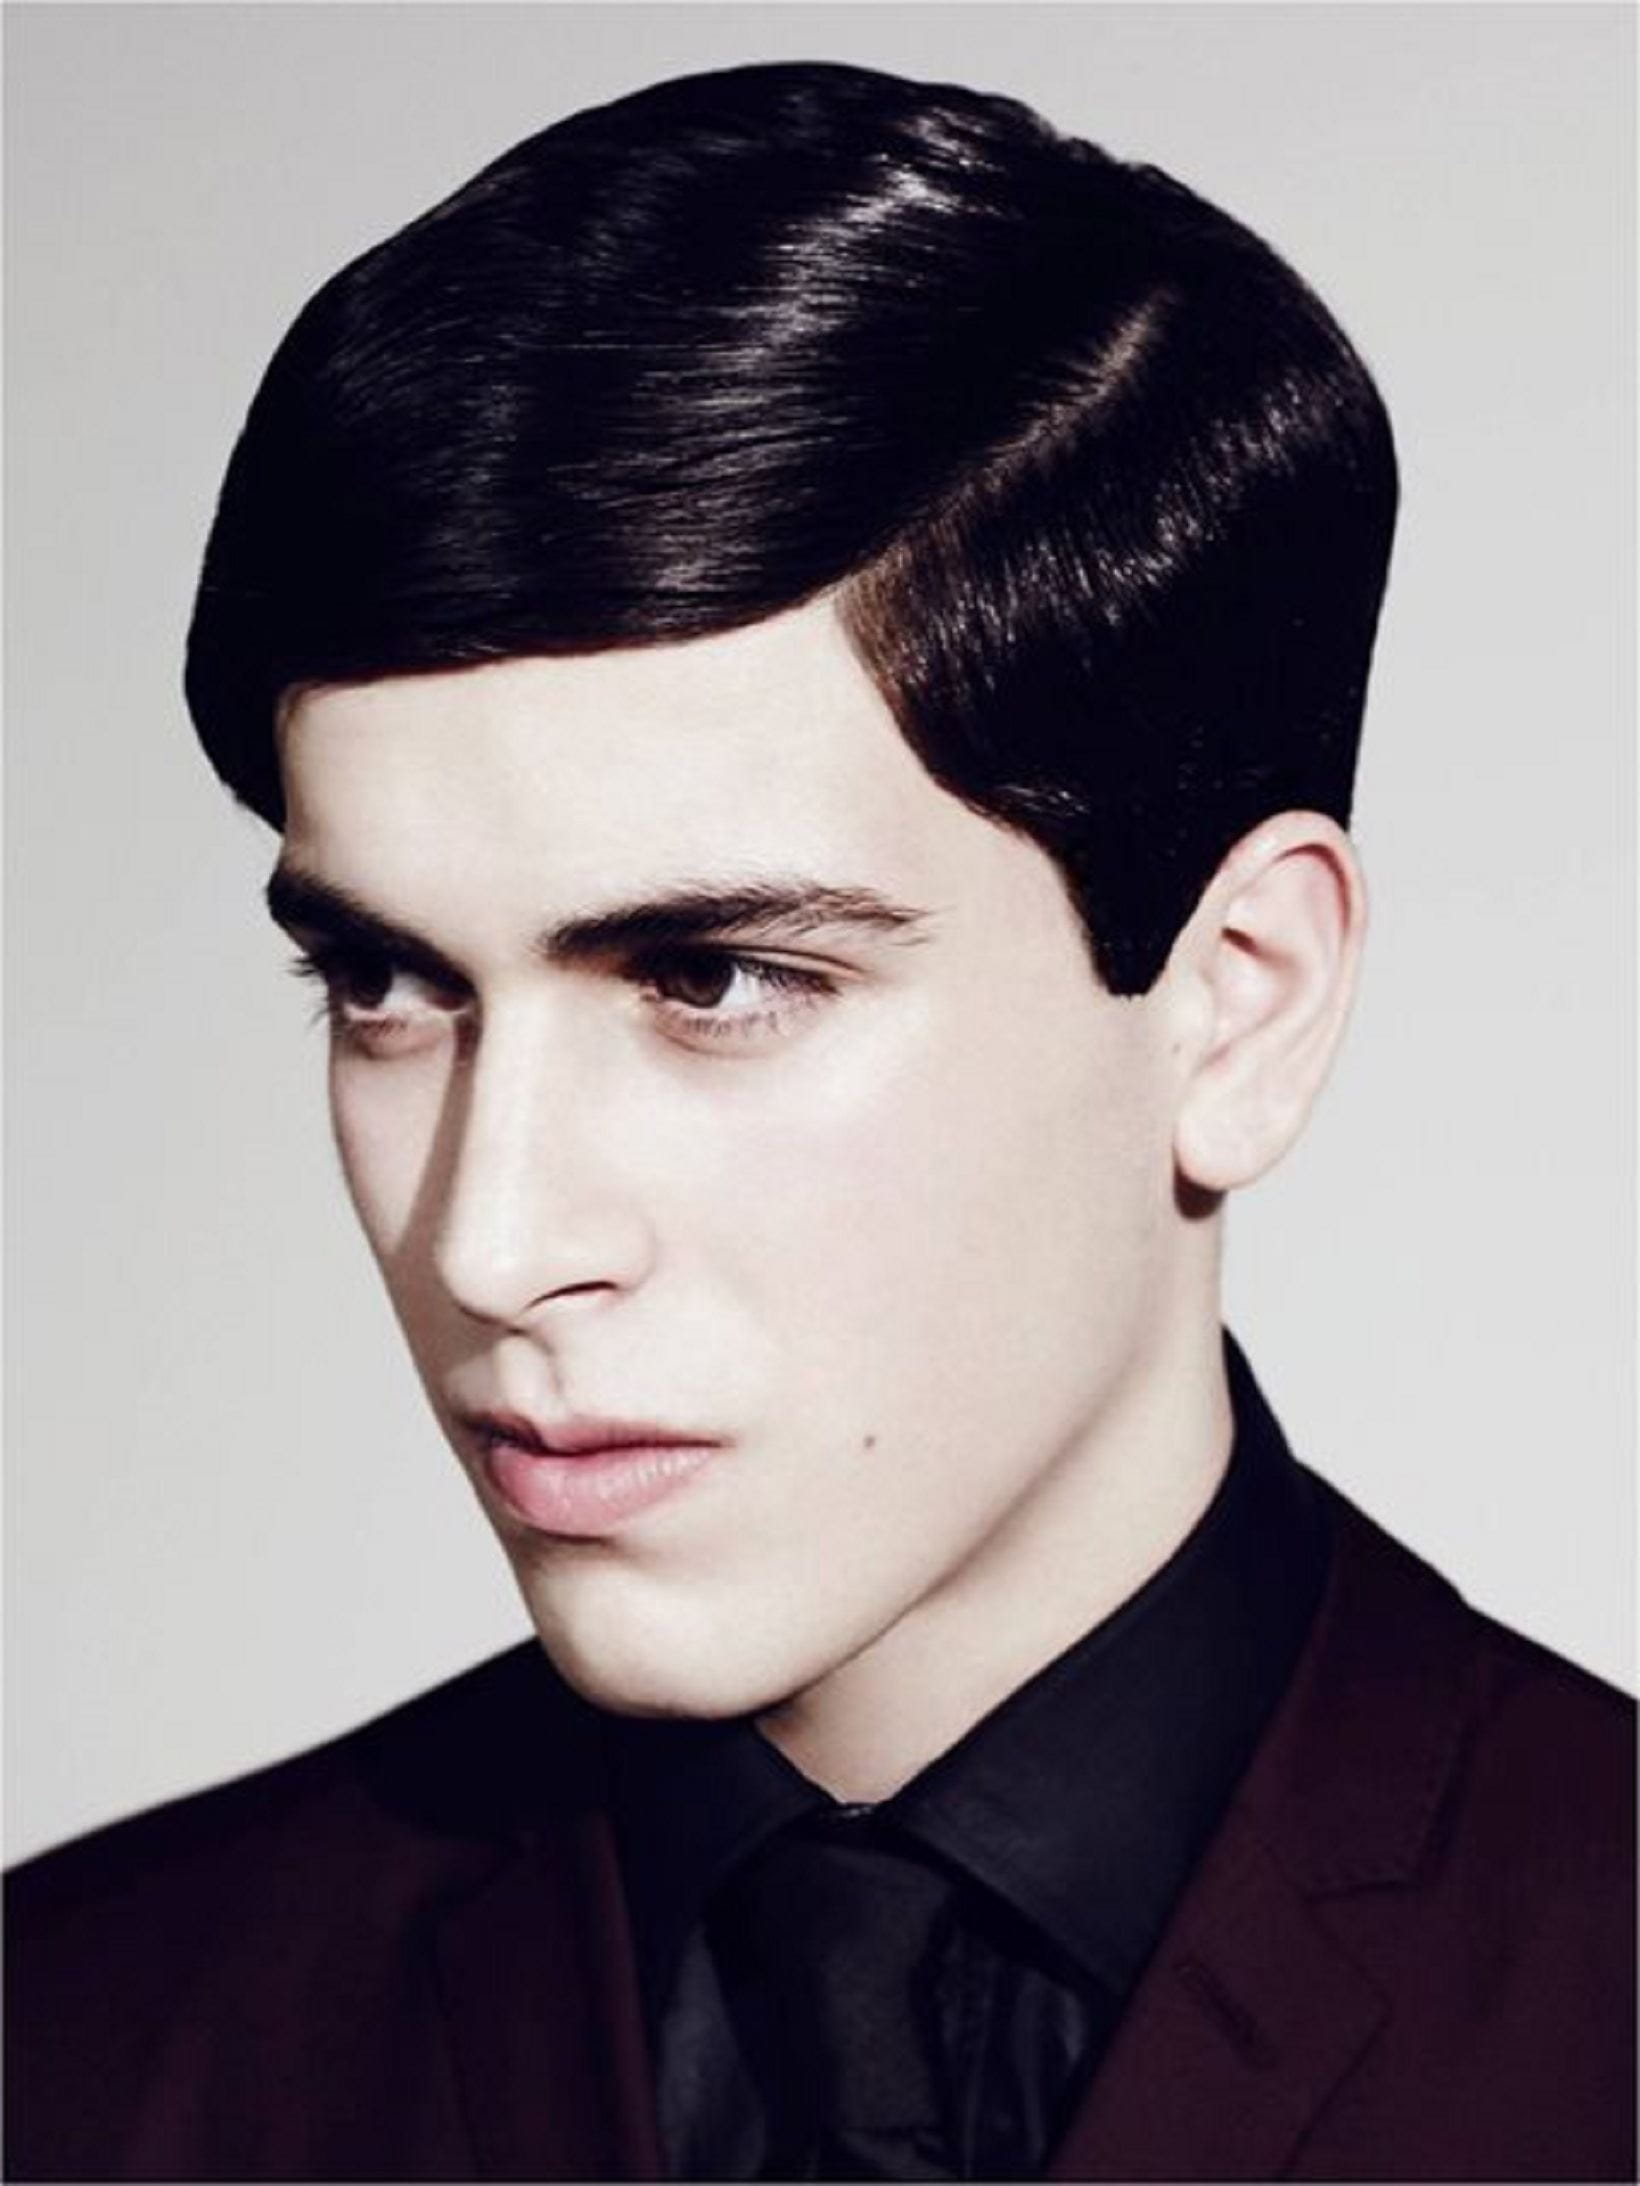 man-with-classic-sleek-hairstyle